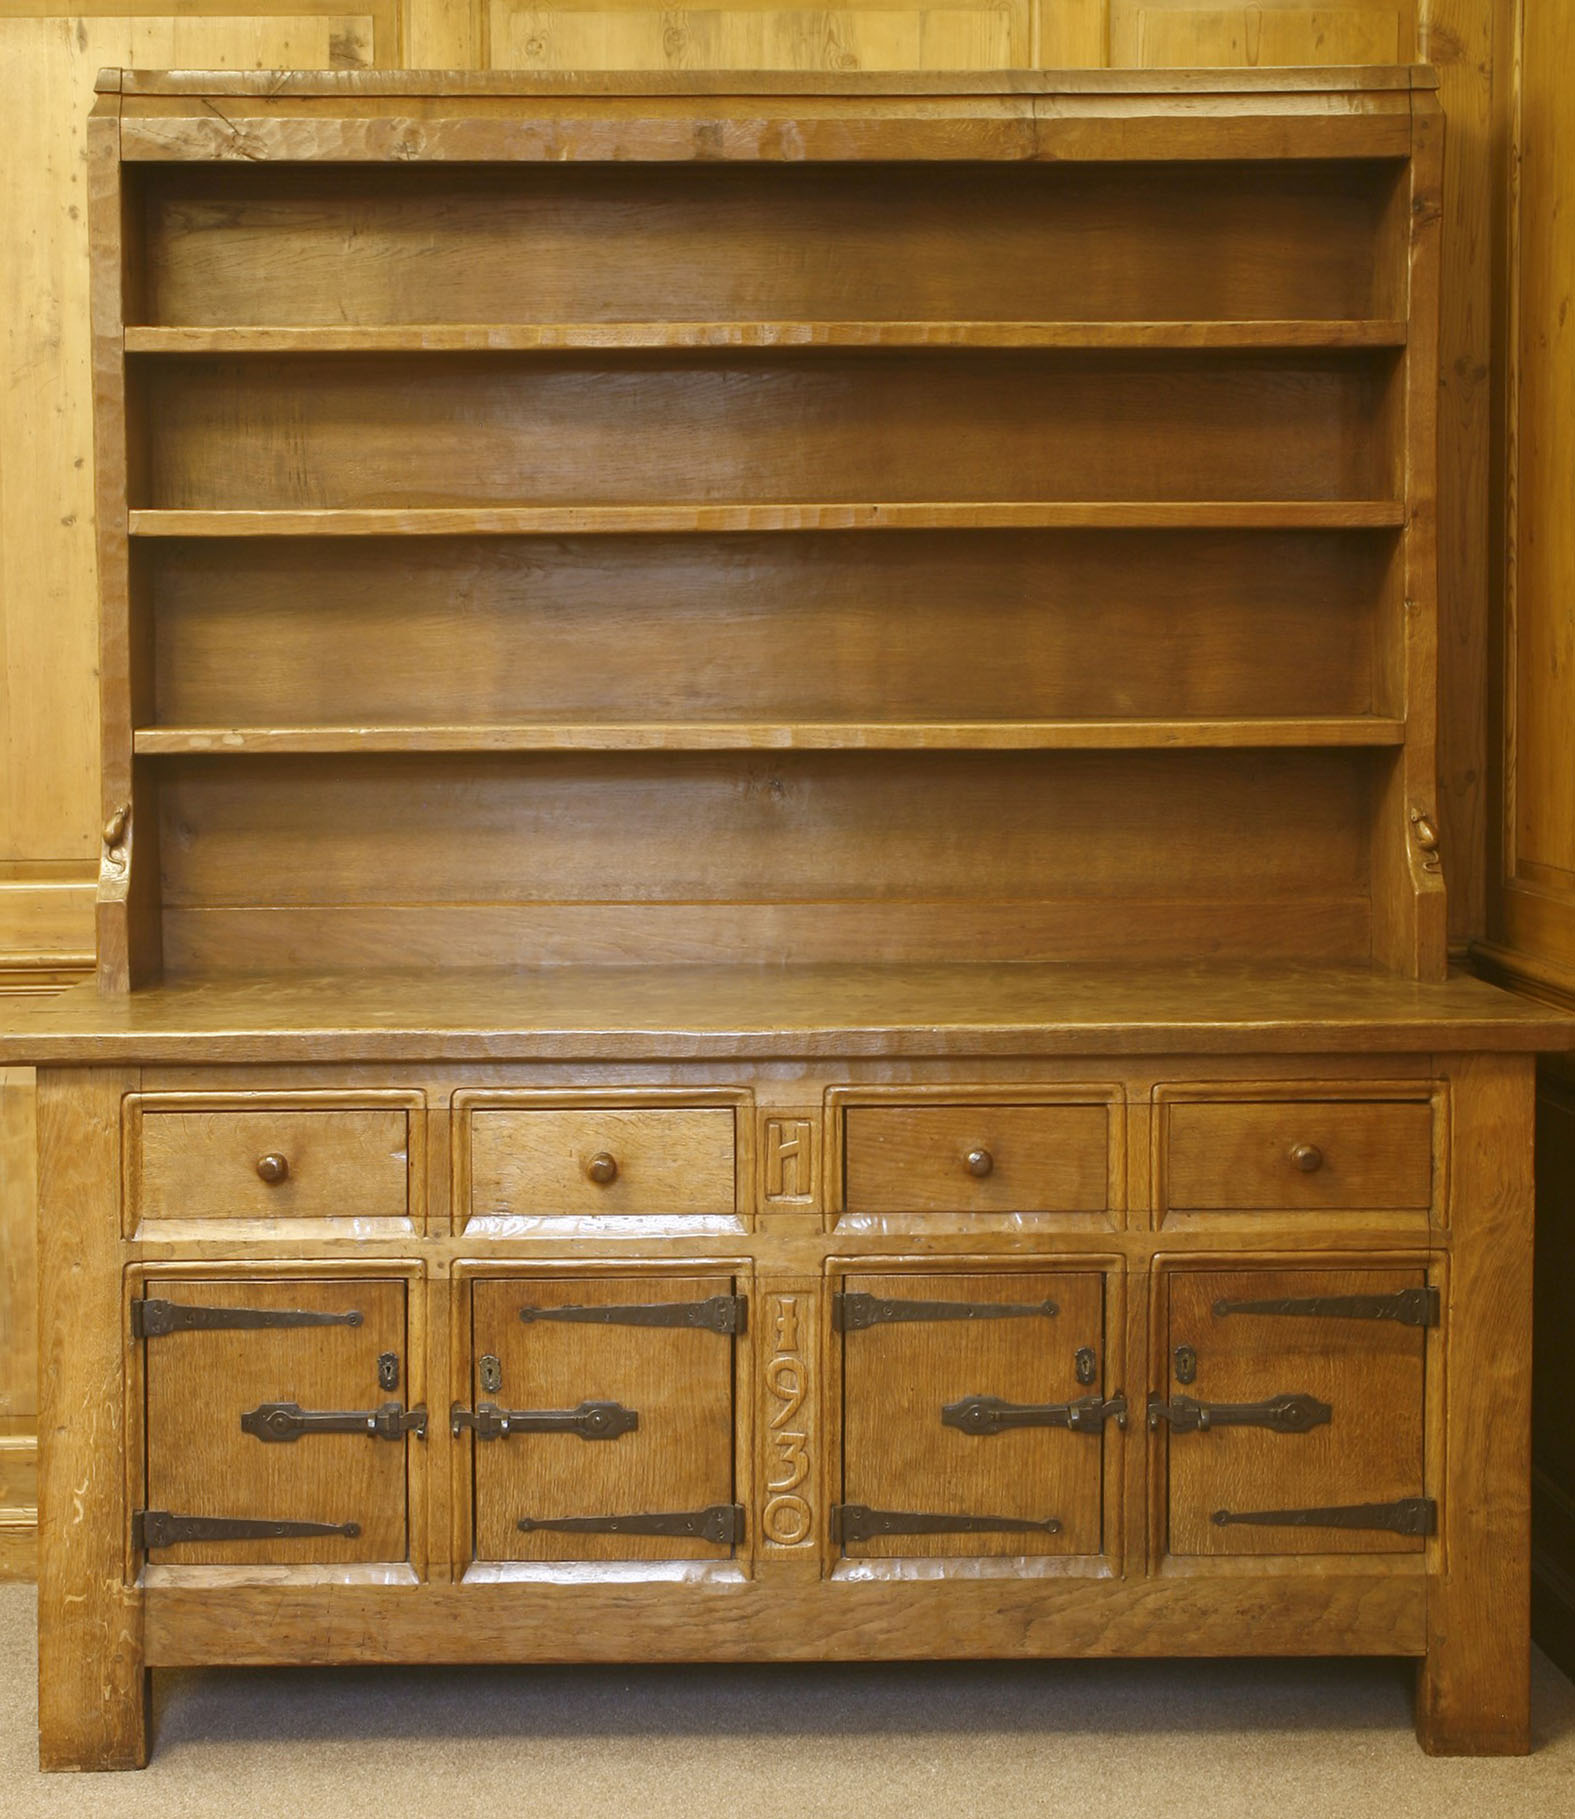 Mouseman Oak Dresser - sold for £43,050 including premium